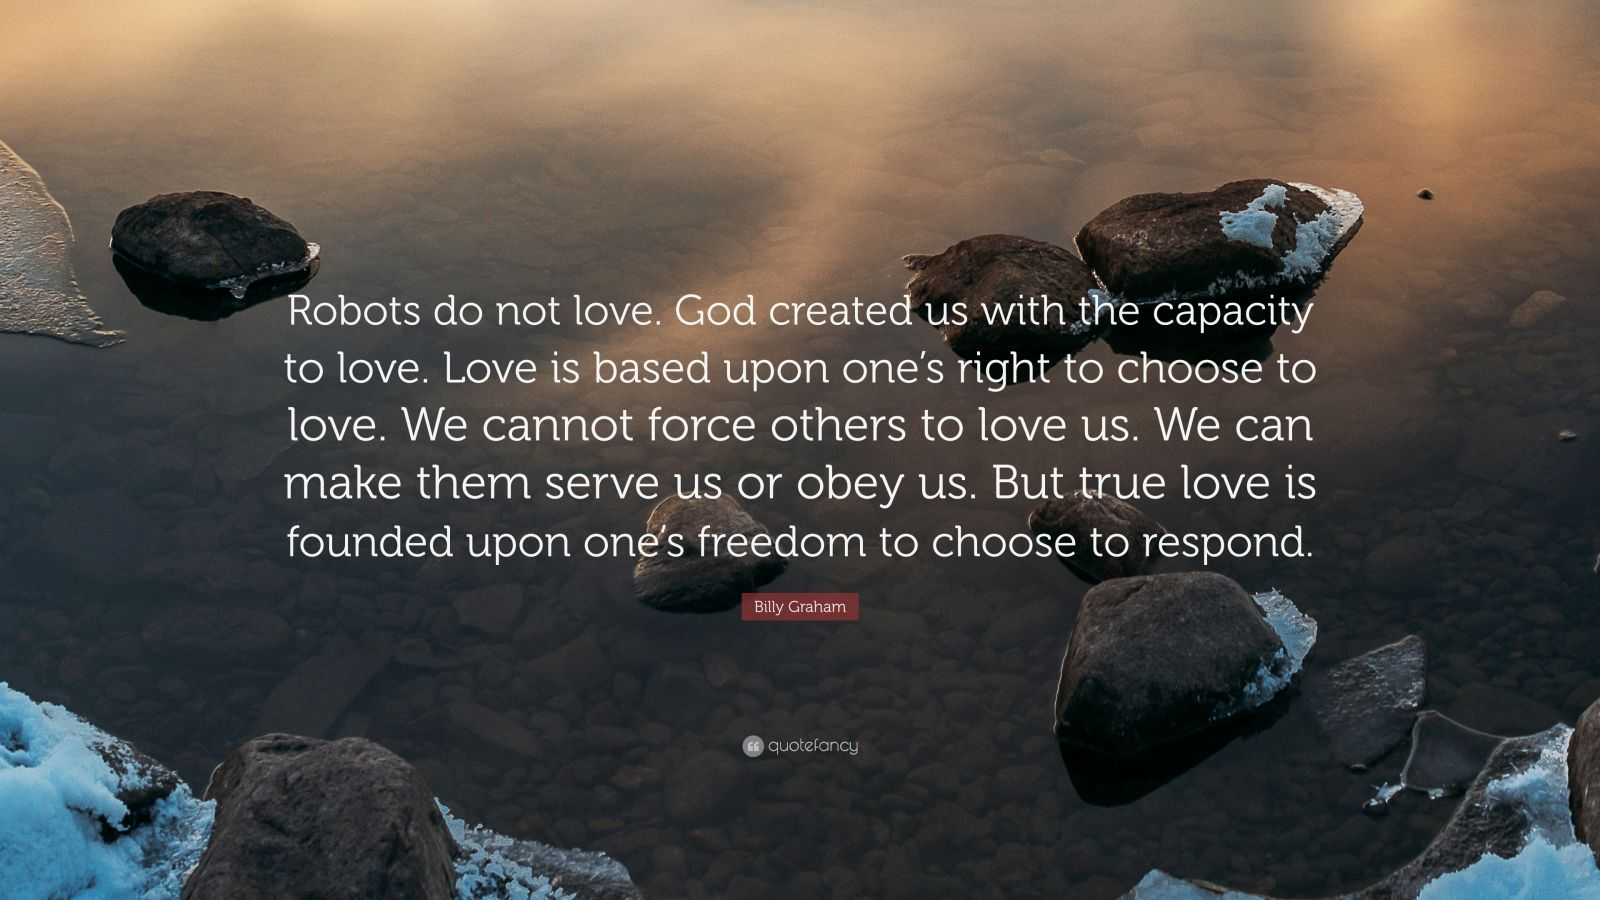 "Billy Graham Quote: ""Robots do not love. God created us with the capacity to love. Love is based upon one's right to choose to love. We cannot force others to love us. We can make them serve us or obey us. But true love is founded upon one's freedom to choose to respond."""